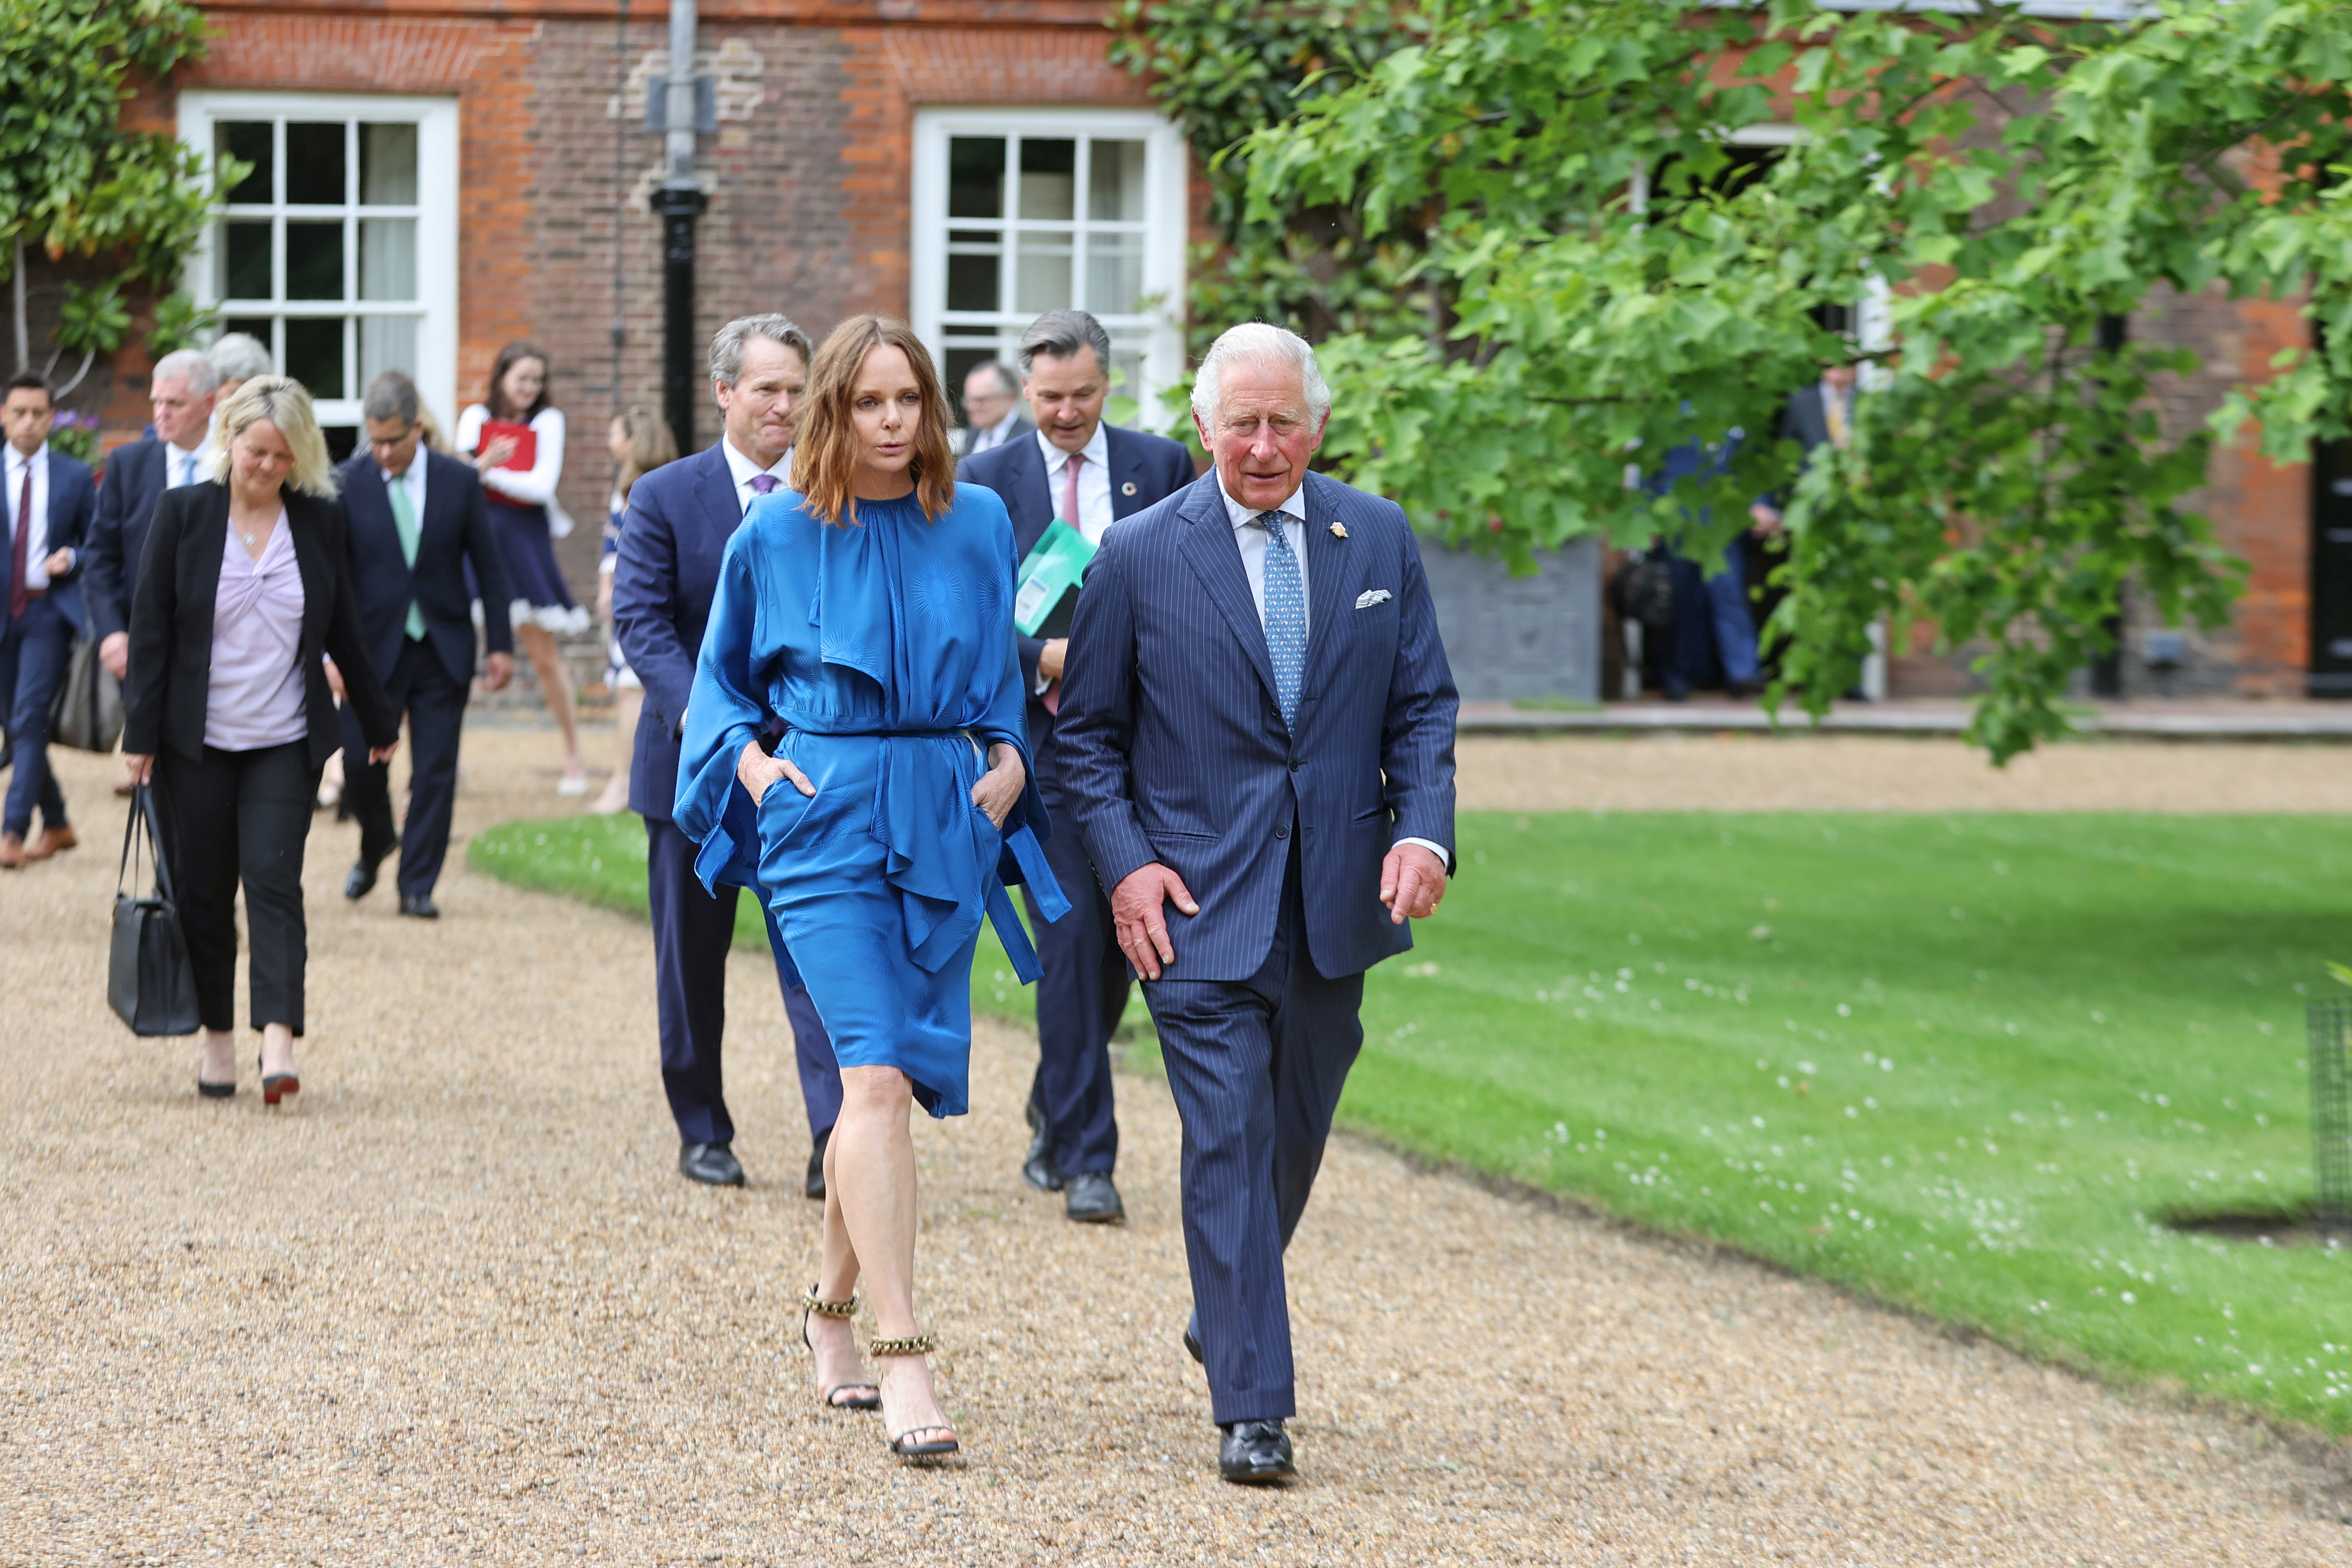 Stella McCartney and Britain's Prince Charles, who announced the Terra Carta Transition Coalitions, an organized, global collective working together to drive investment towards a sustainable future for Nature, People and Planet as a meeting and Coalitions' announcement form part of the wider G7 activity, depart St James Palace, London, Britain June 10, 2021. Chris Jackson/Pool via REUTERS